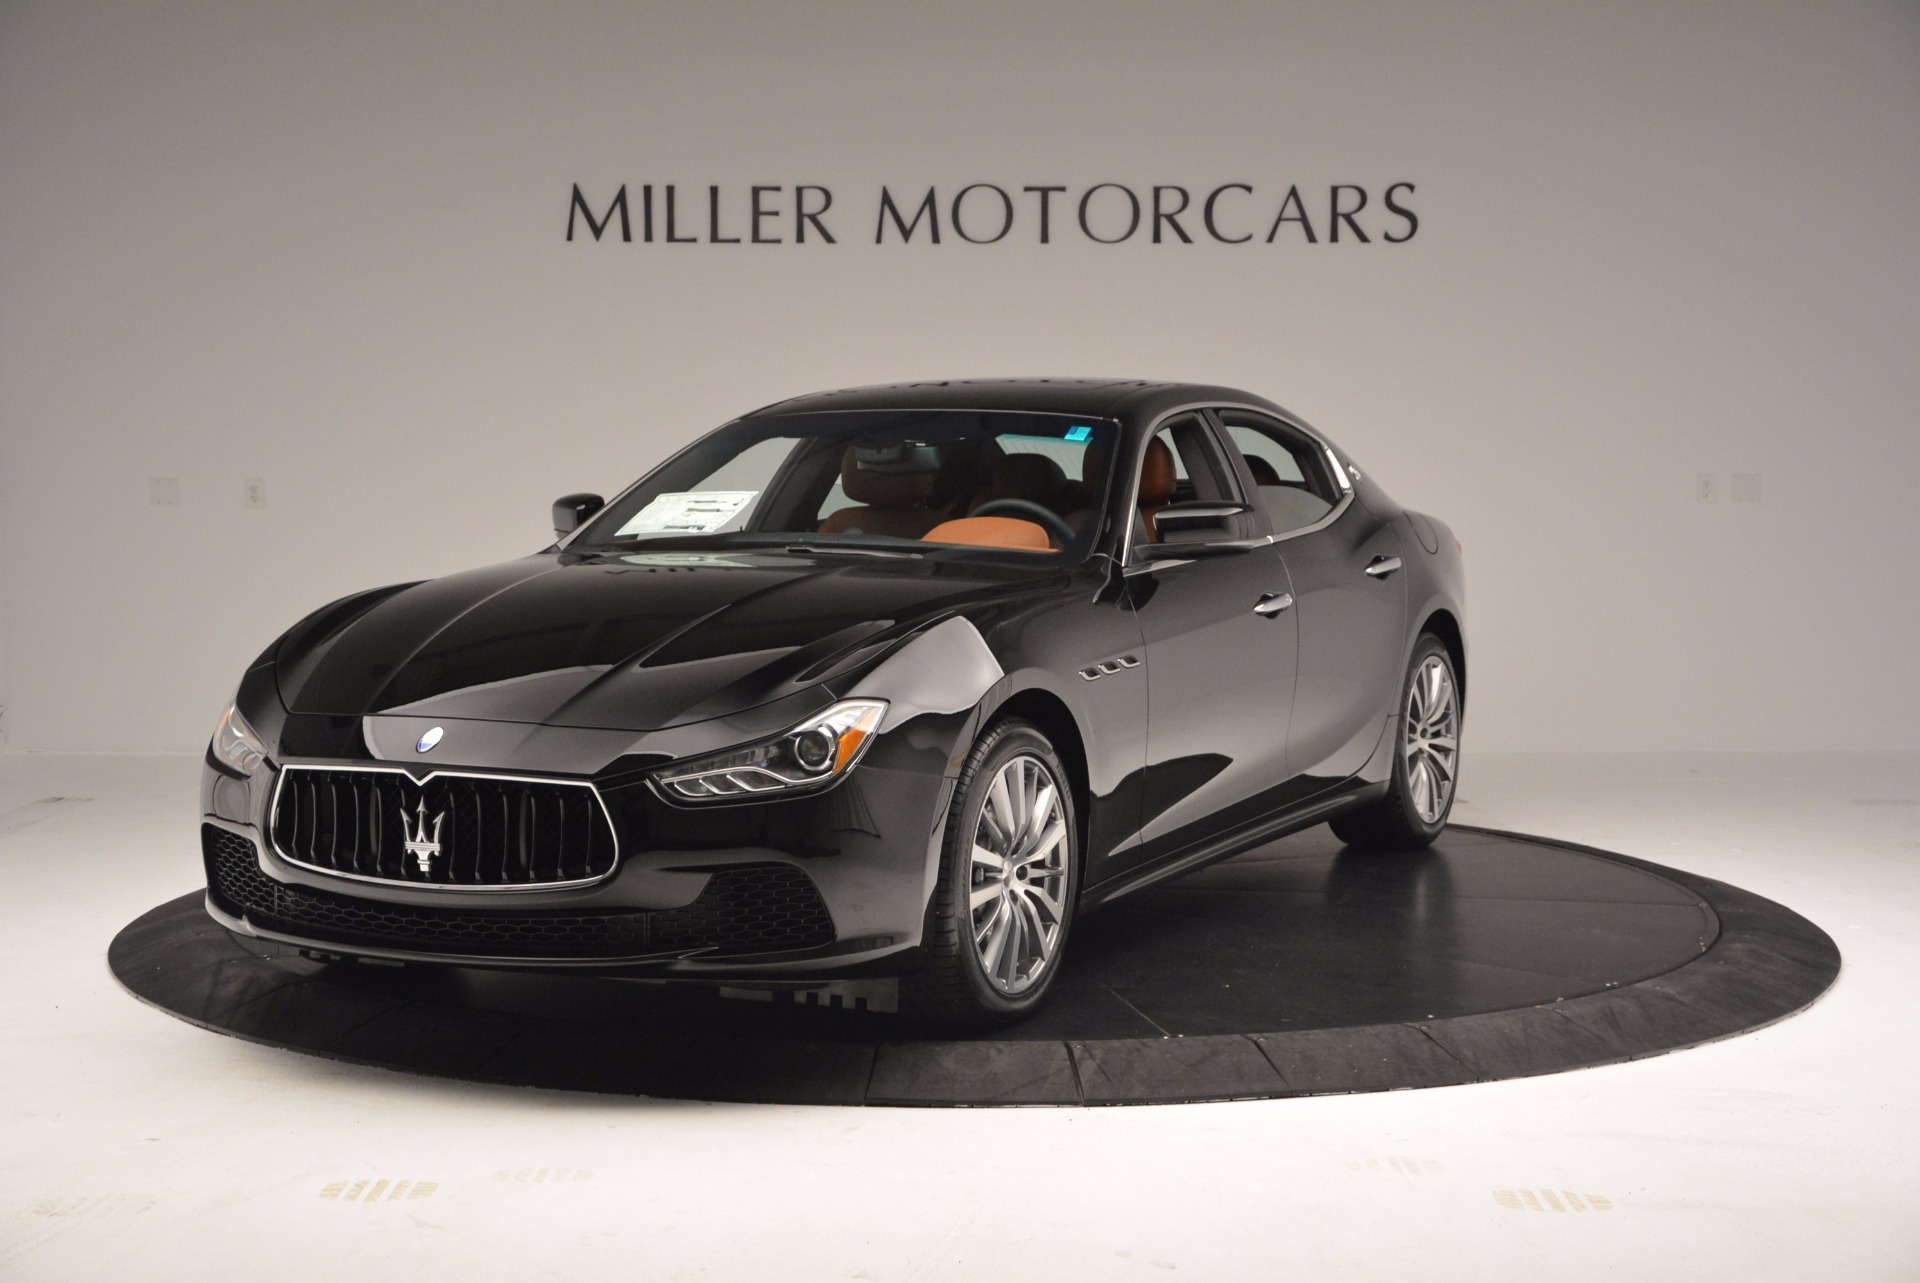 New 2017 Maserati Ghibli S Q4 EX-LOANER for sale Sold at Aston Martin of Greenwich in Greenwich CT 06830 1